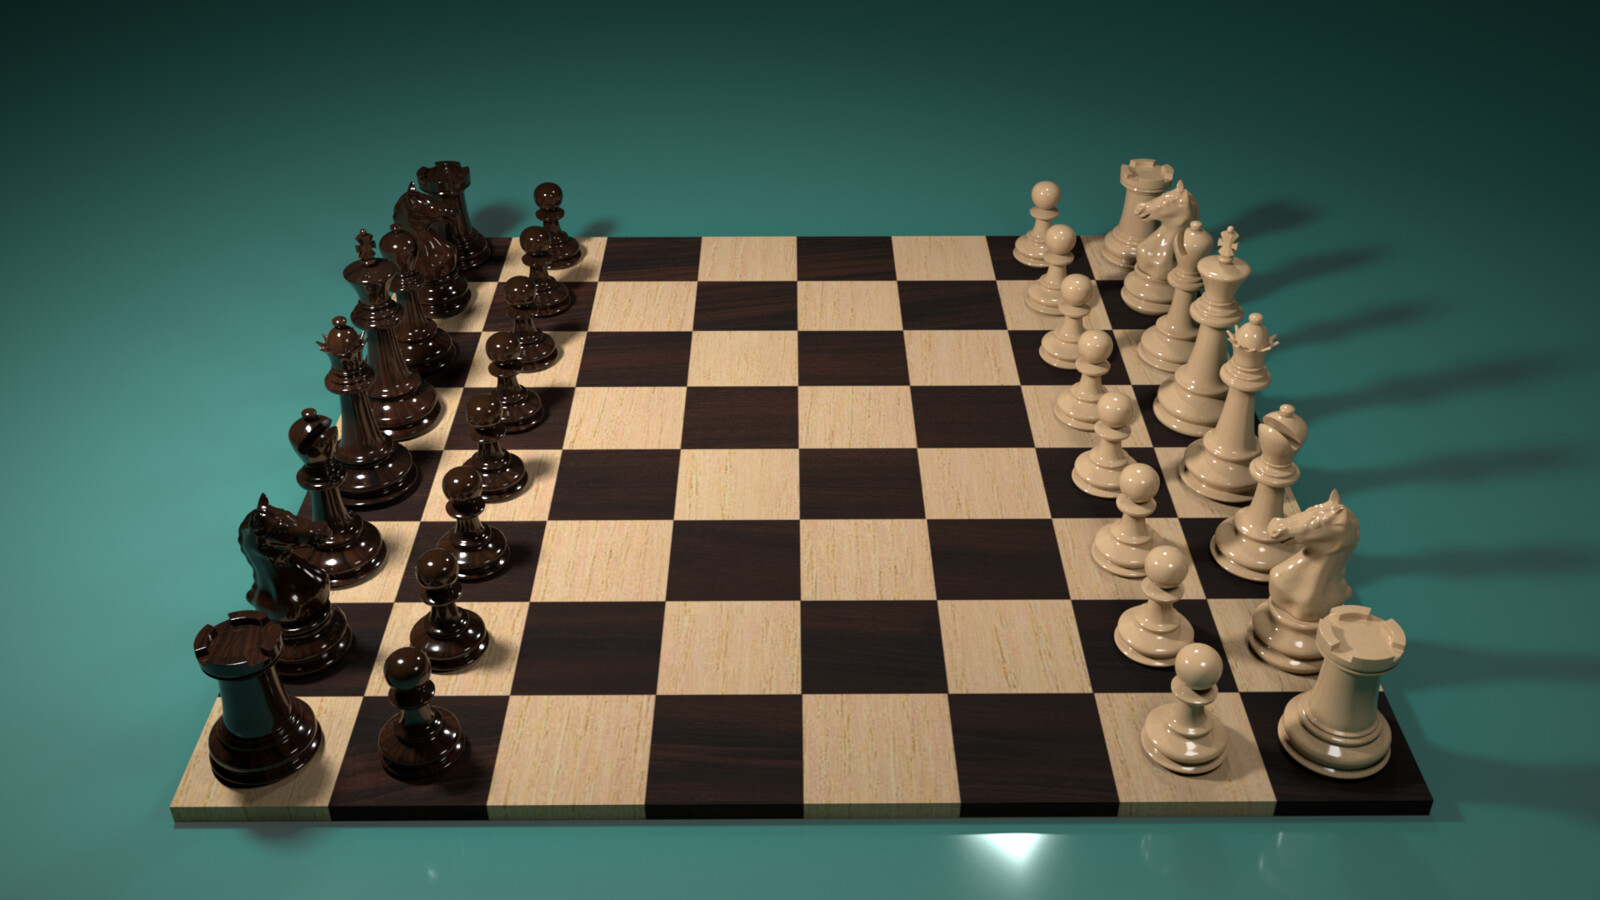 Chessboard view 3